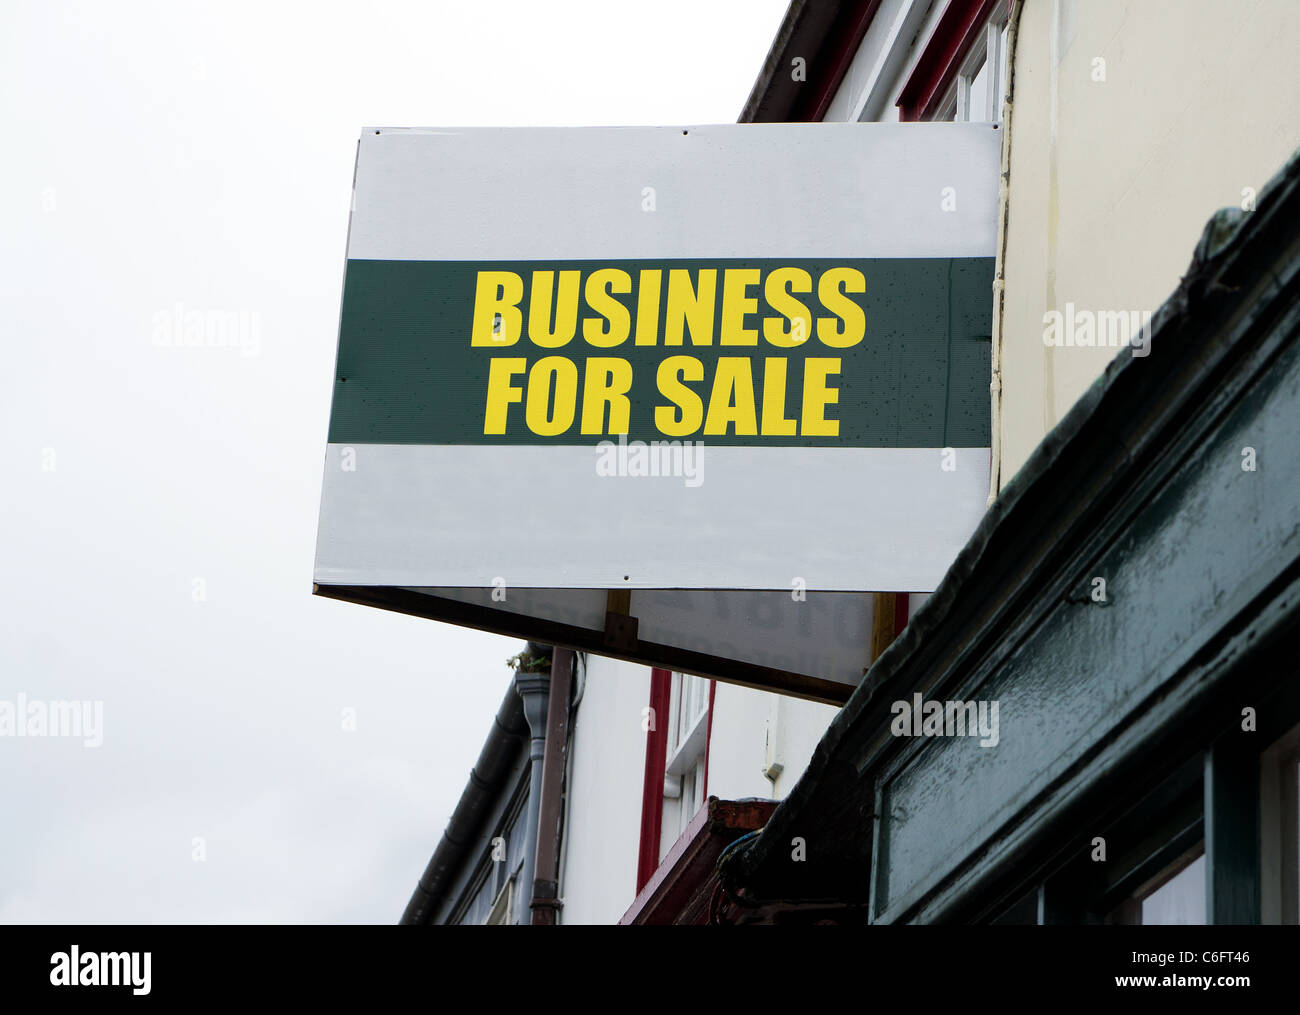 A business for sale sign, Manchester, UK - Stock Image